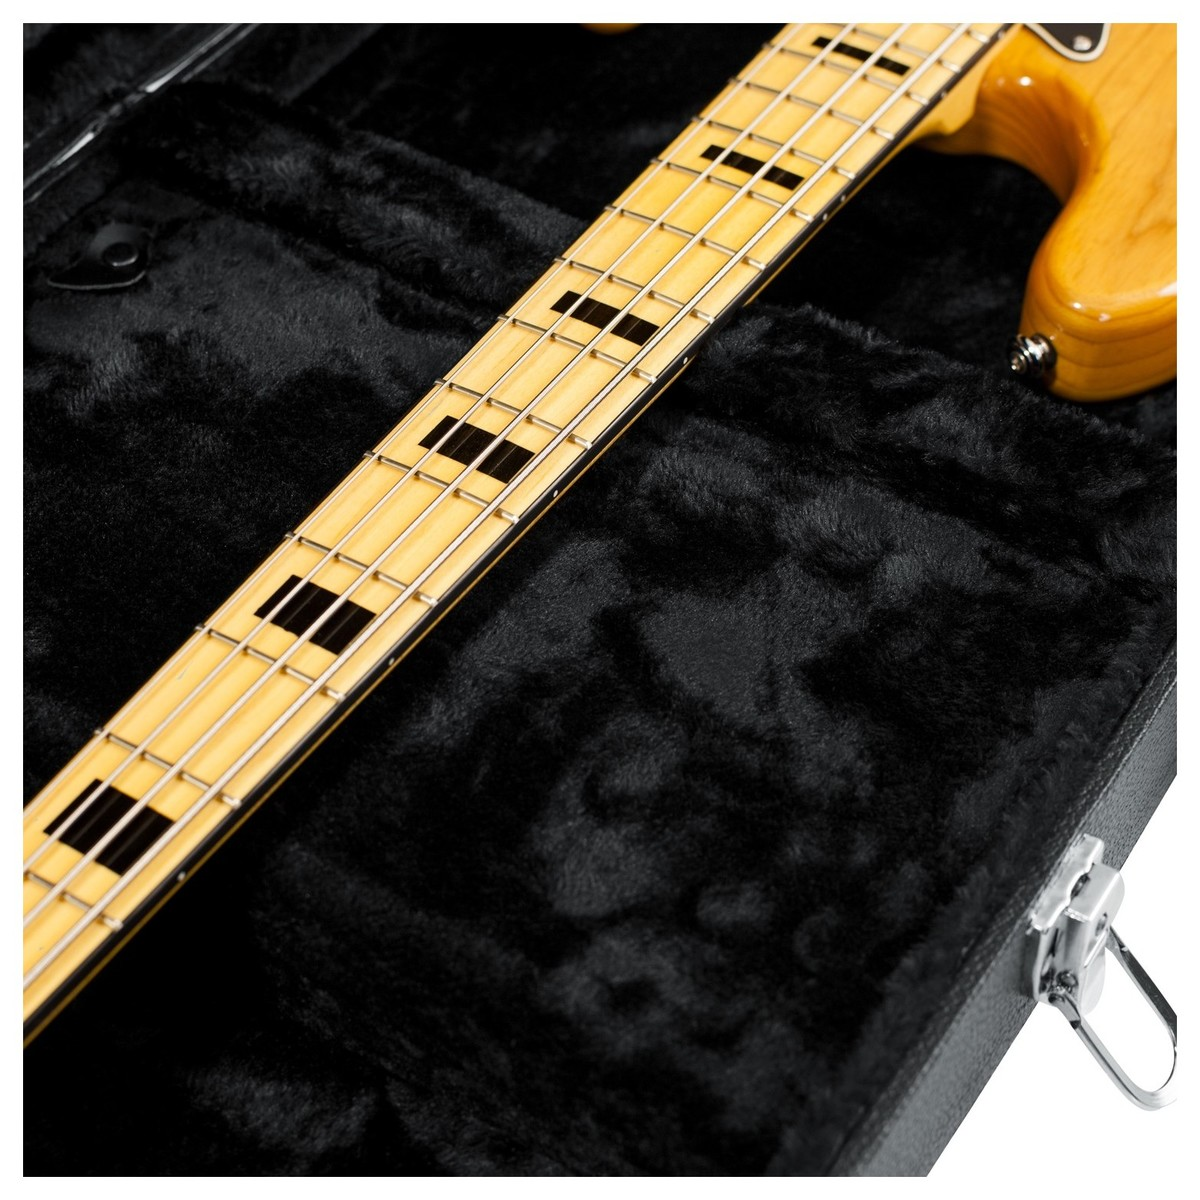 Generous 4pdt Switch Schematic Thick Two Humbuckers 5 Way Switch Flat Bbbind Catalog Car Security System Wiring Diagram Youthful One Humbucker One Volume Wiring YellowHot Rod Wiring Diagram Download Gator GWE BASS Economy Bass Guitar Case At Gear4music